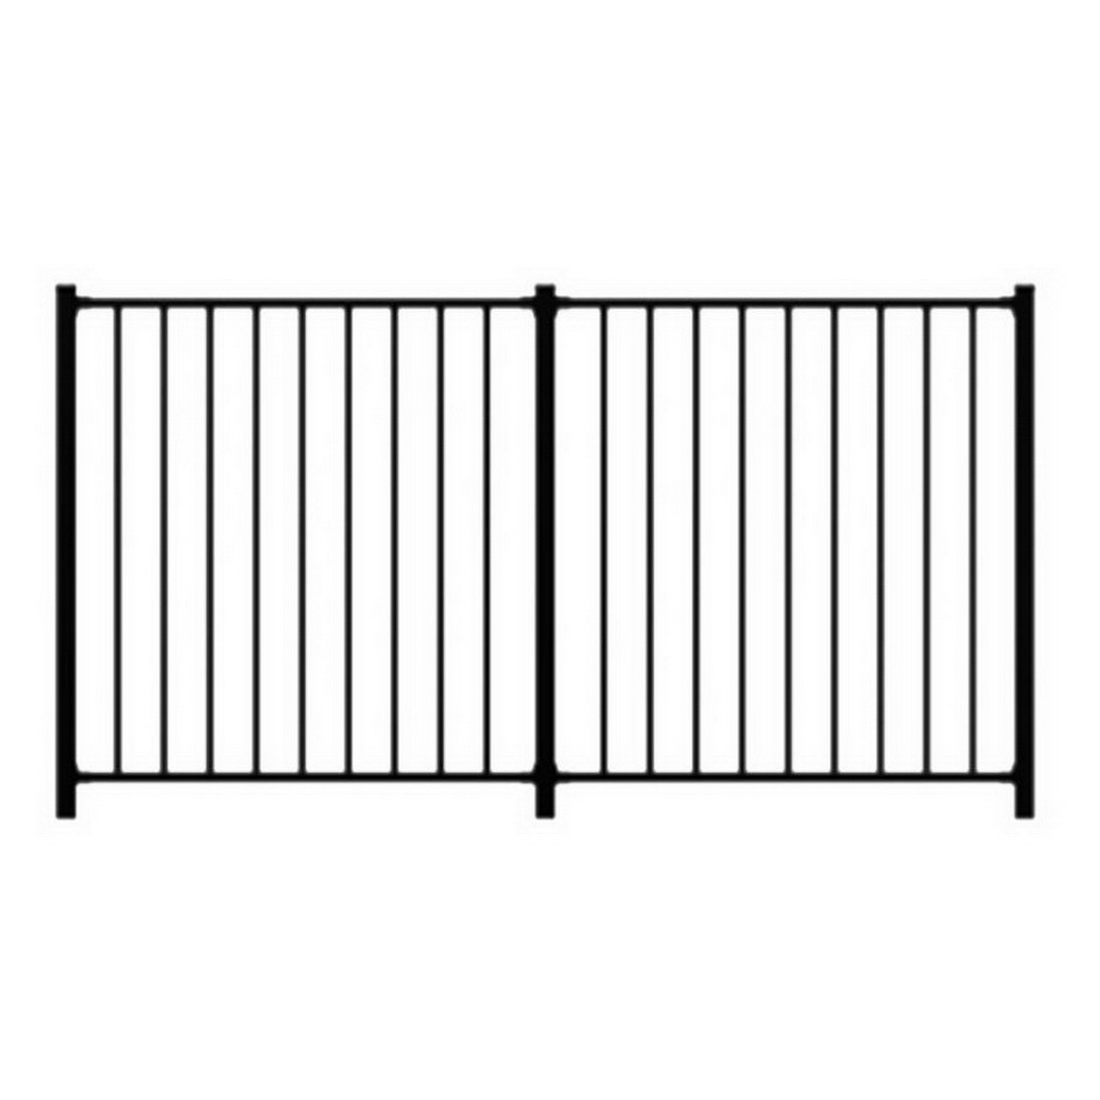 Lodge 1200H Balustrade Panel 1110 x 1200mm Powder Coat Aluminum Black FALBP1211